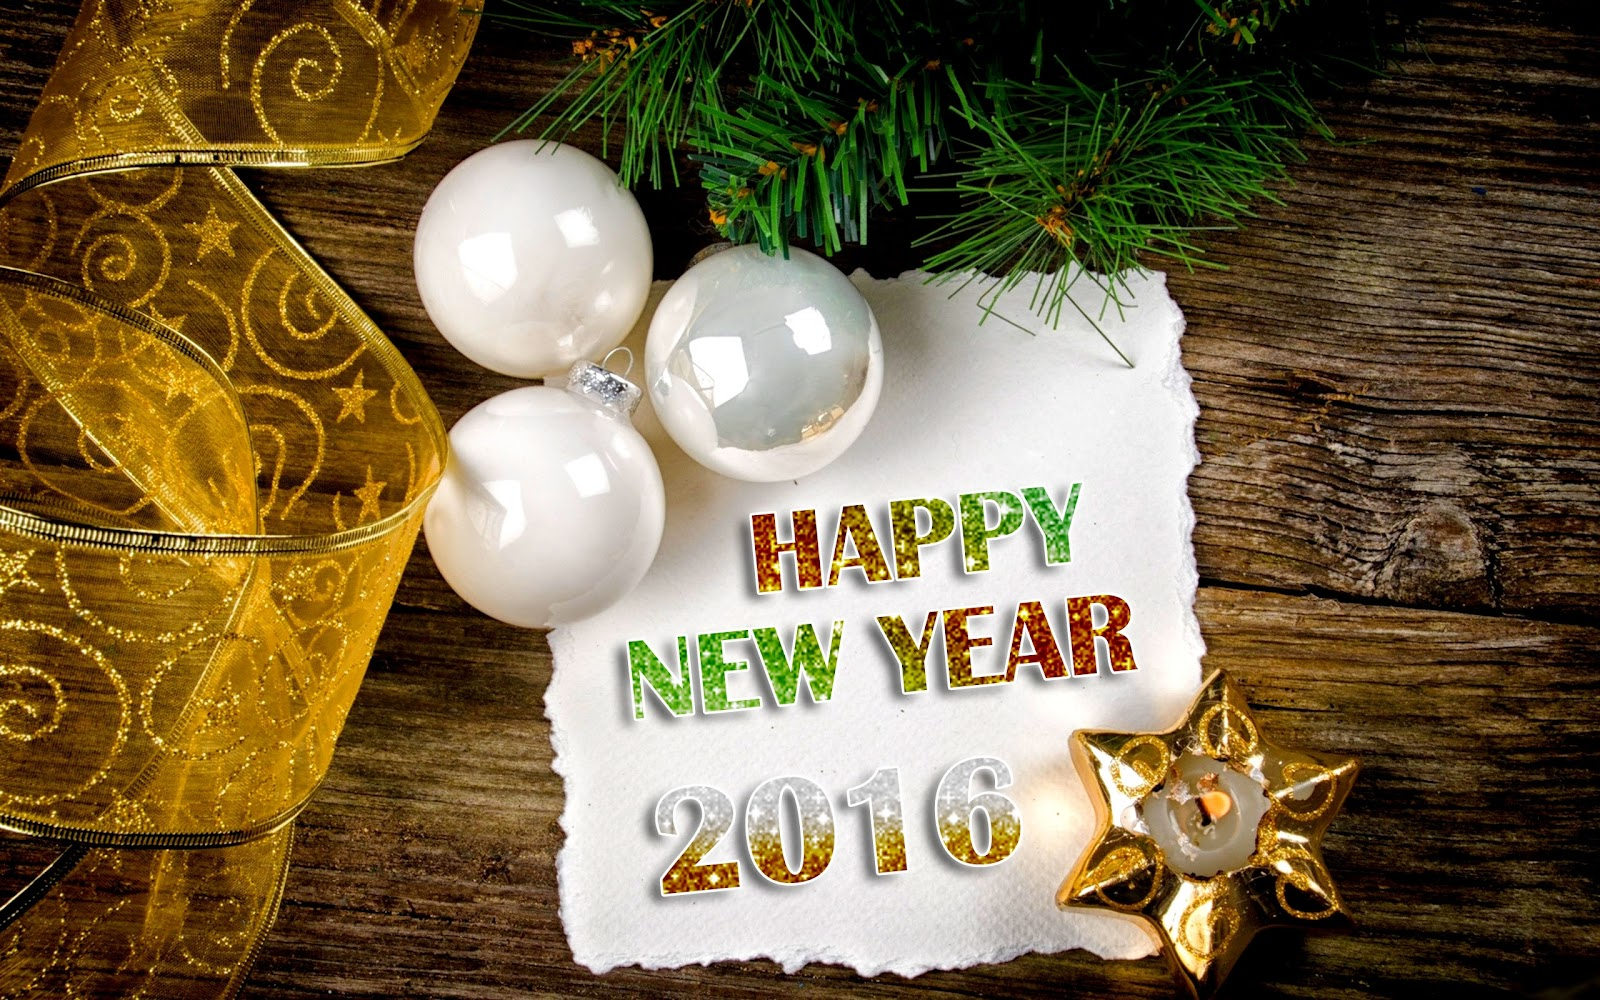 Happy New Year Latest Images 2016